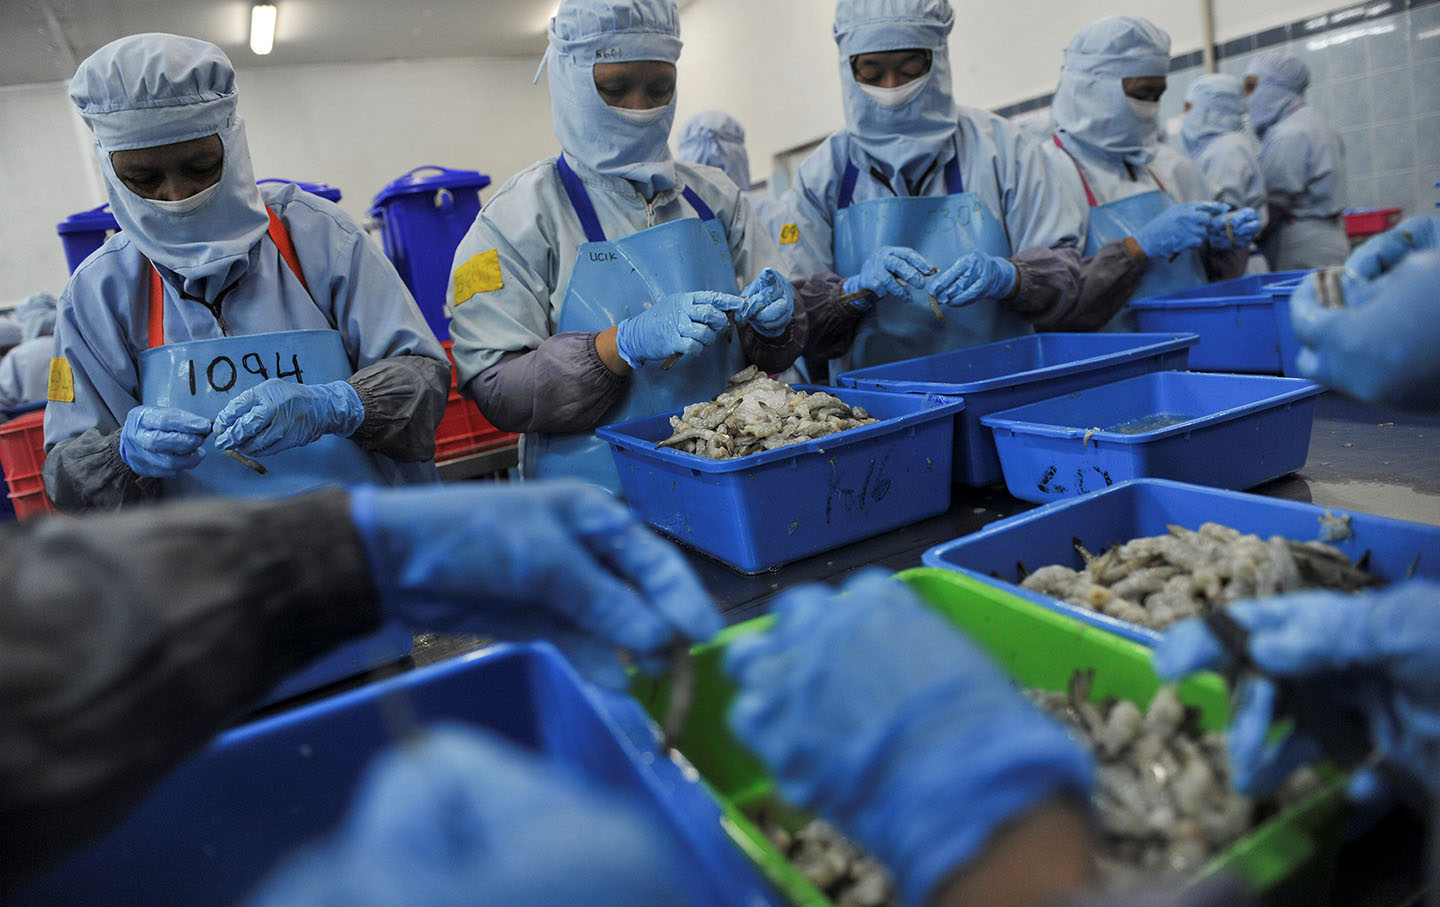 Workers sort shrimp for processing at the PT Kelola Mina Laut seafood processing facility in Gresik, East Java